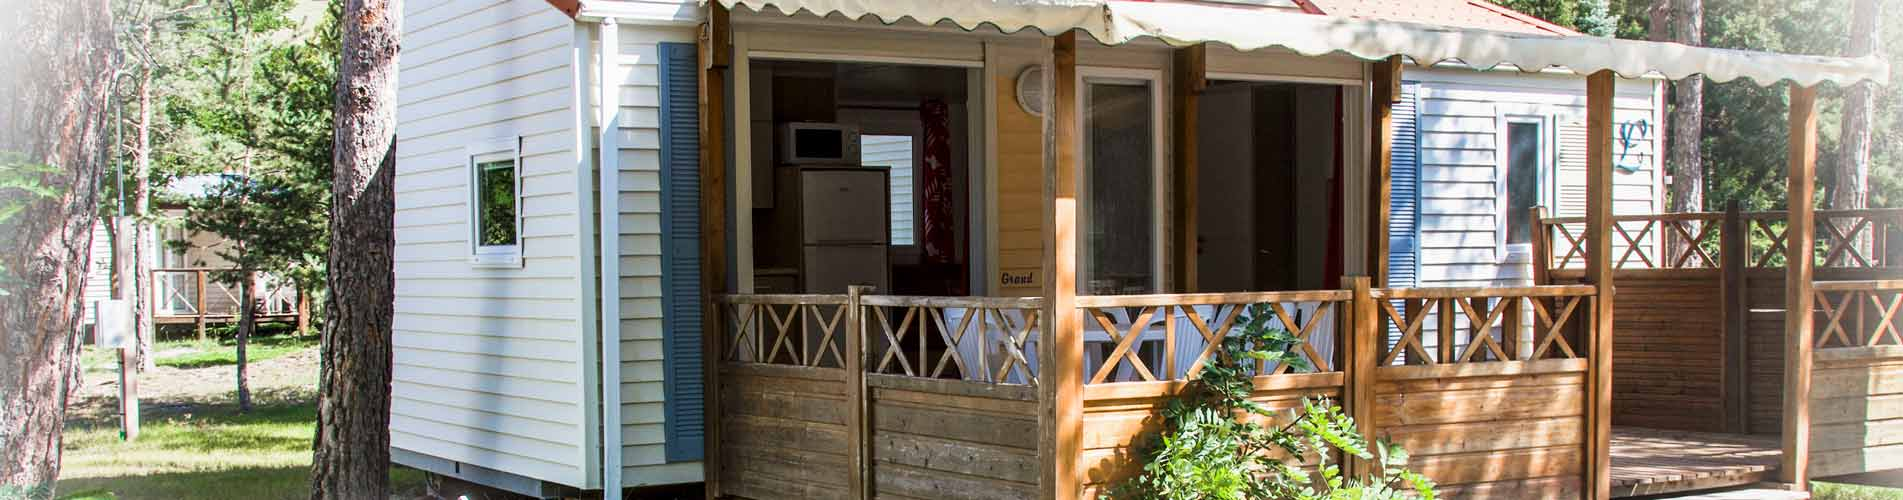 location mobil-home cocoon haute-provence